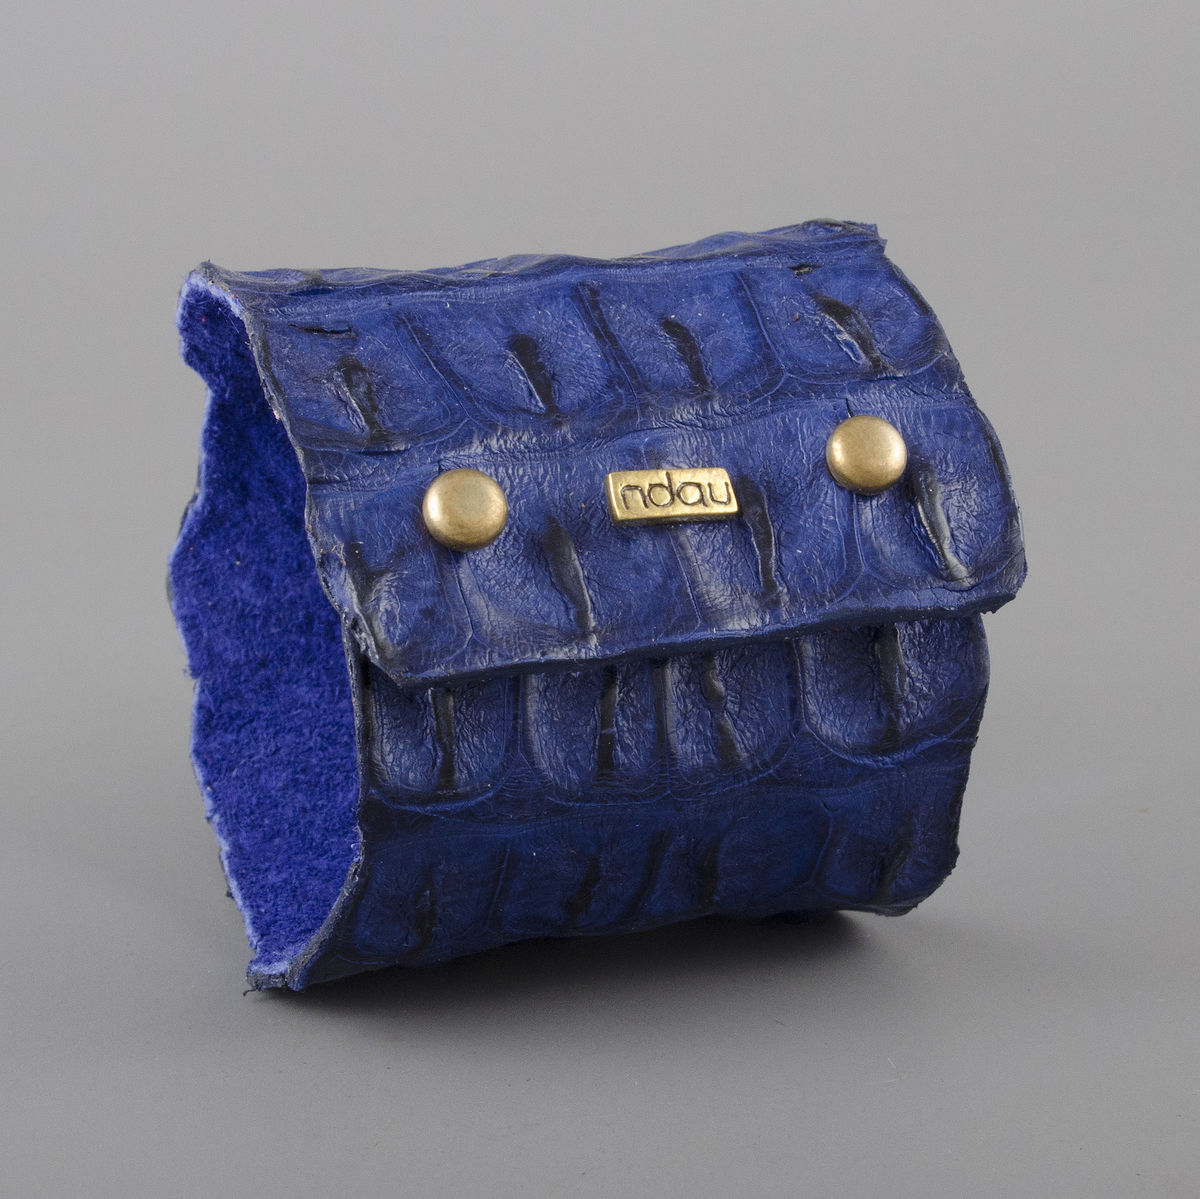 Crocodile Backskin Leather Rock Cuff with Double Holster in Electric Blue - product image